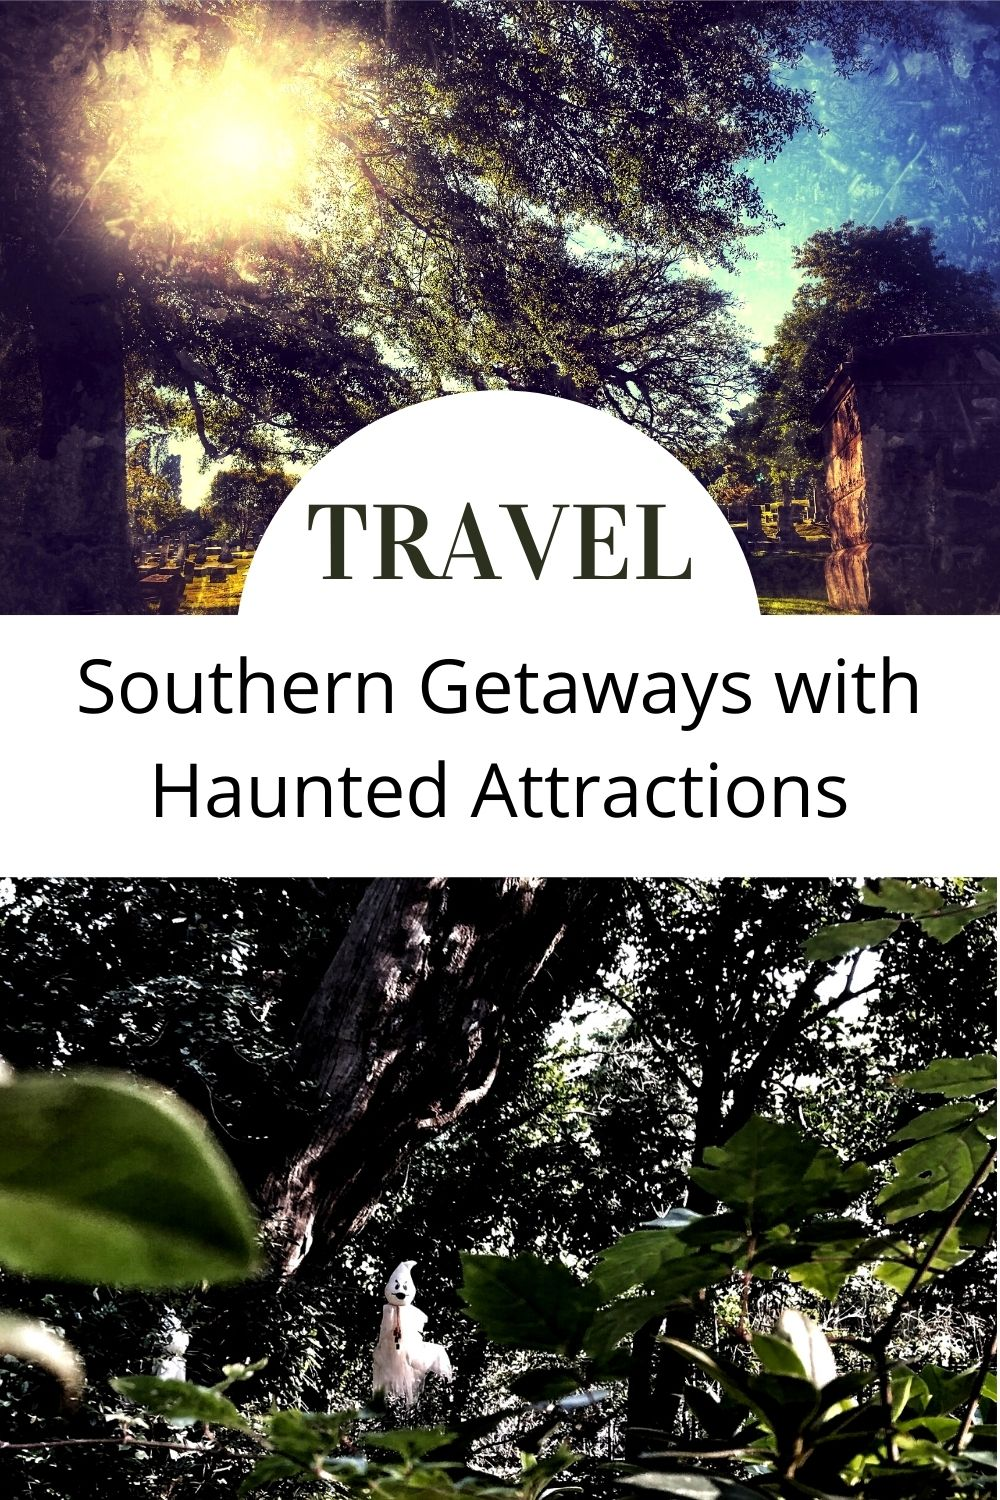 Southern Getaways with Haunted Attractions